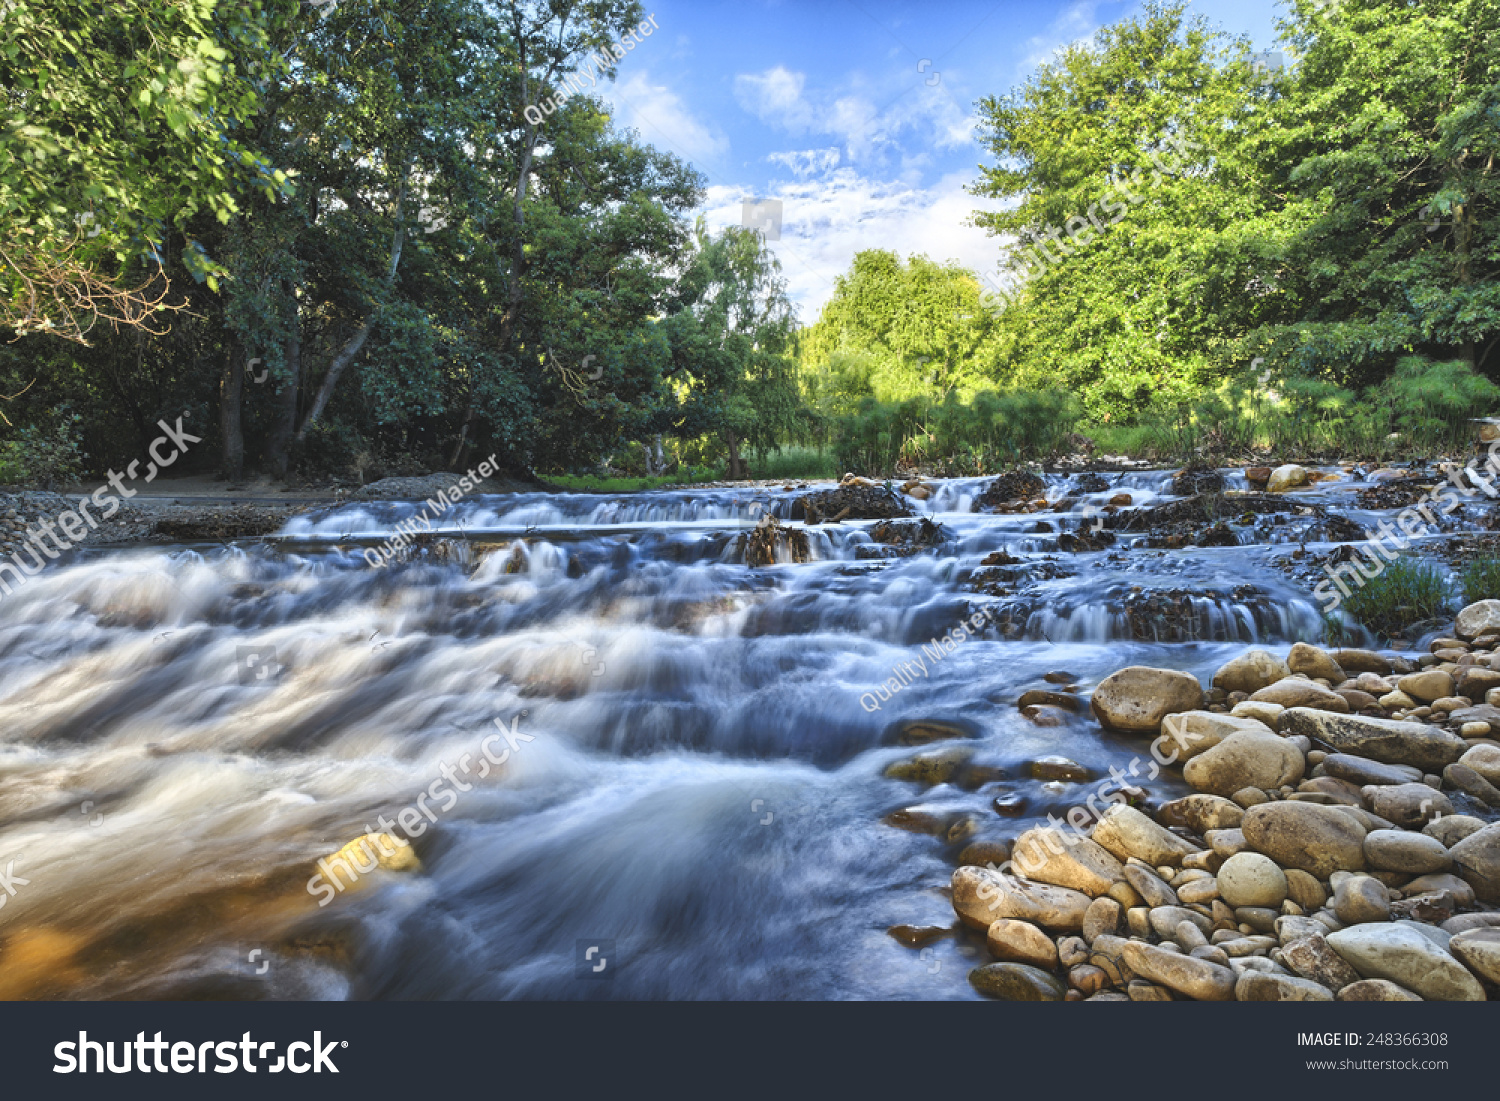 Landscape forest river stones cape town stock photo for Landscaping rocks cape town